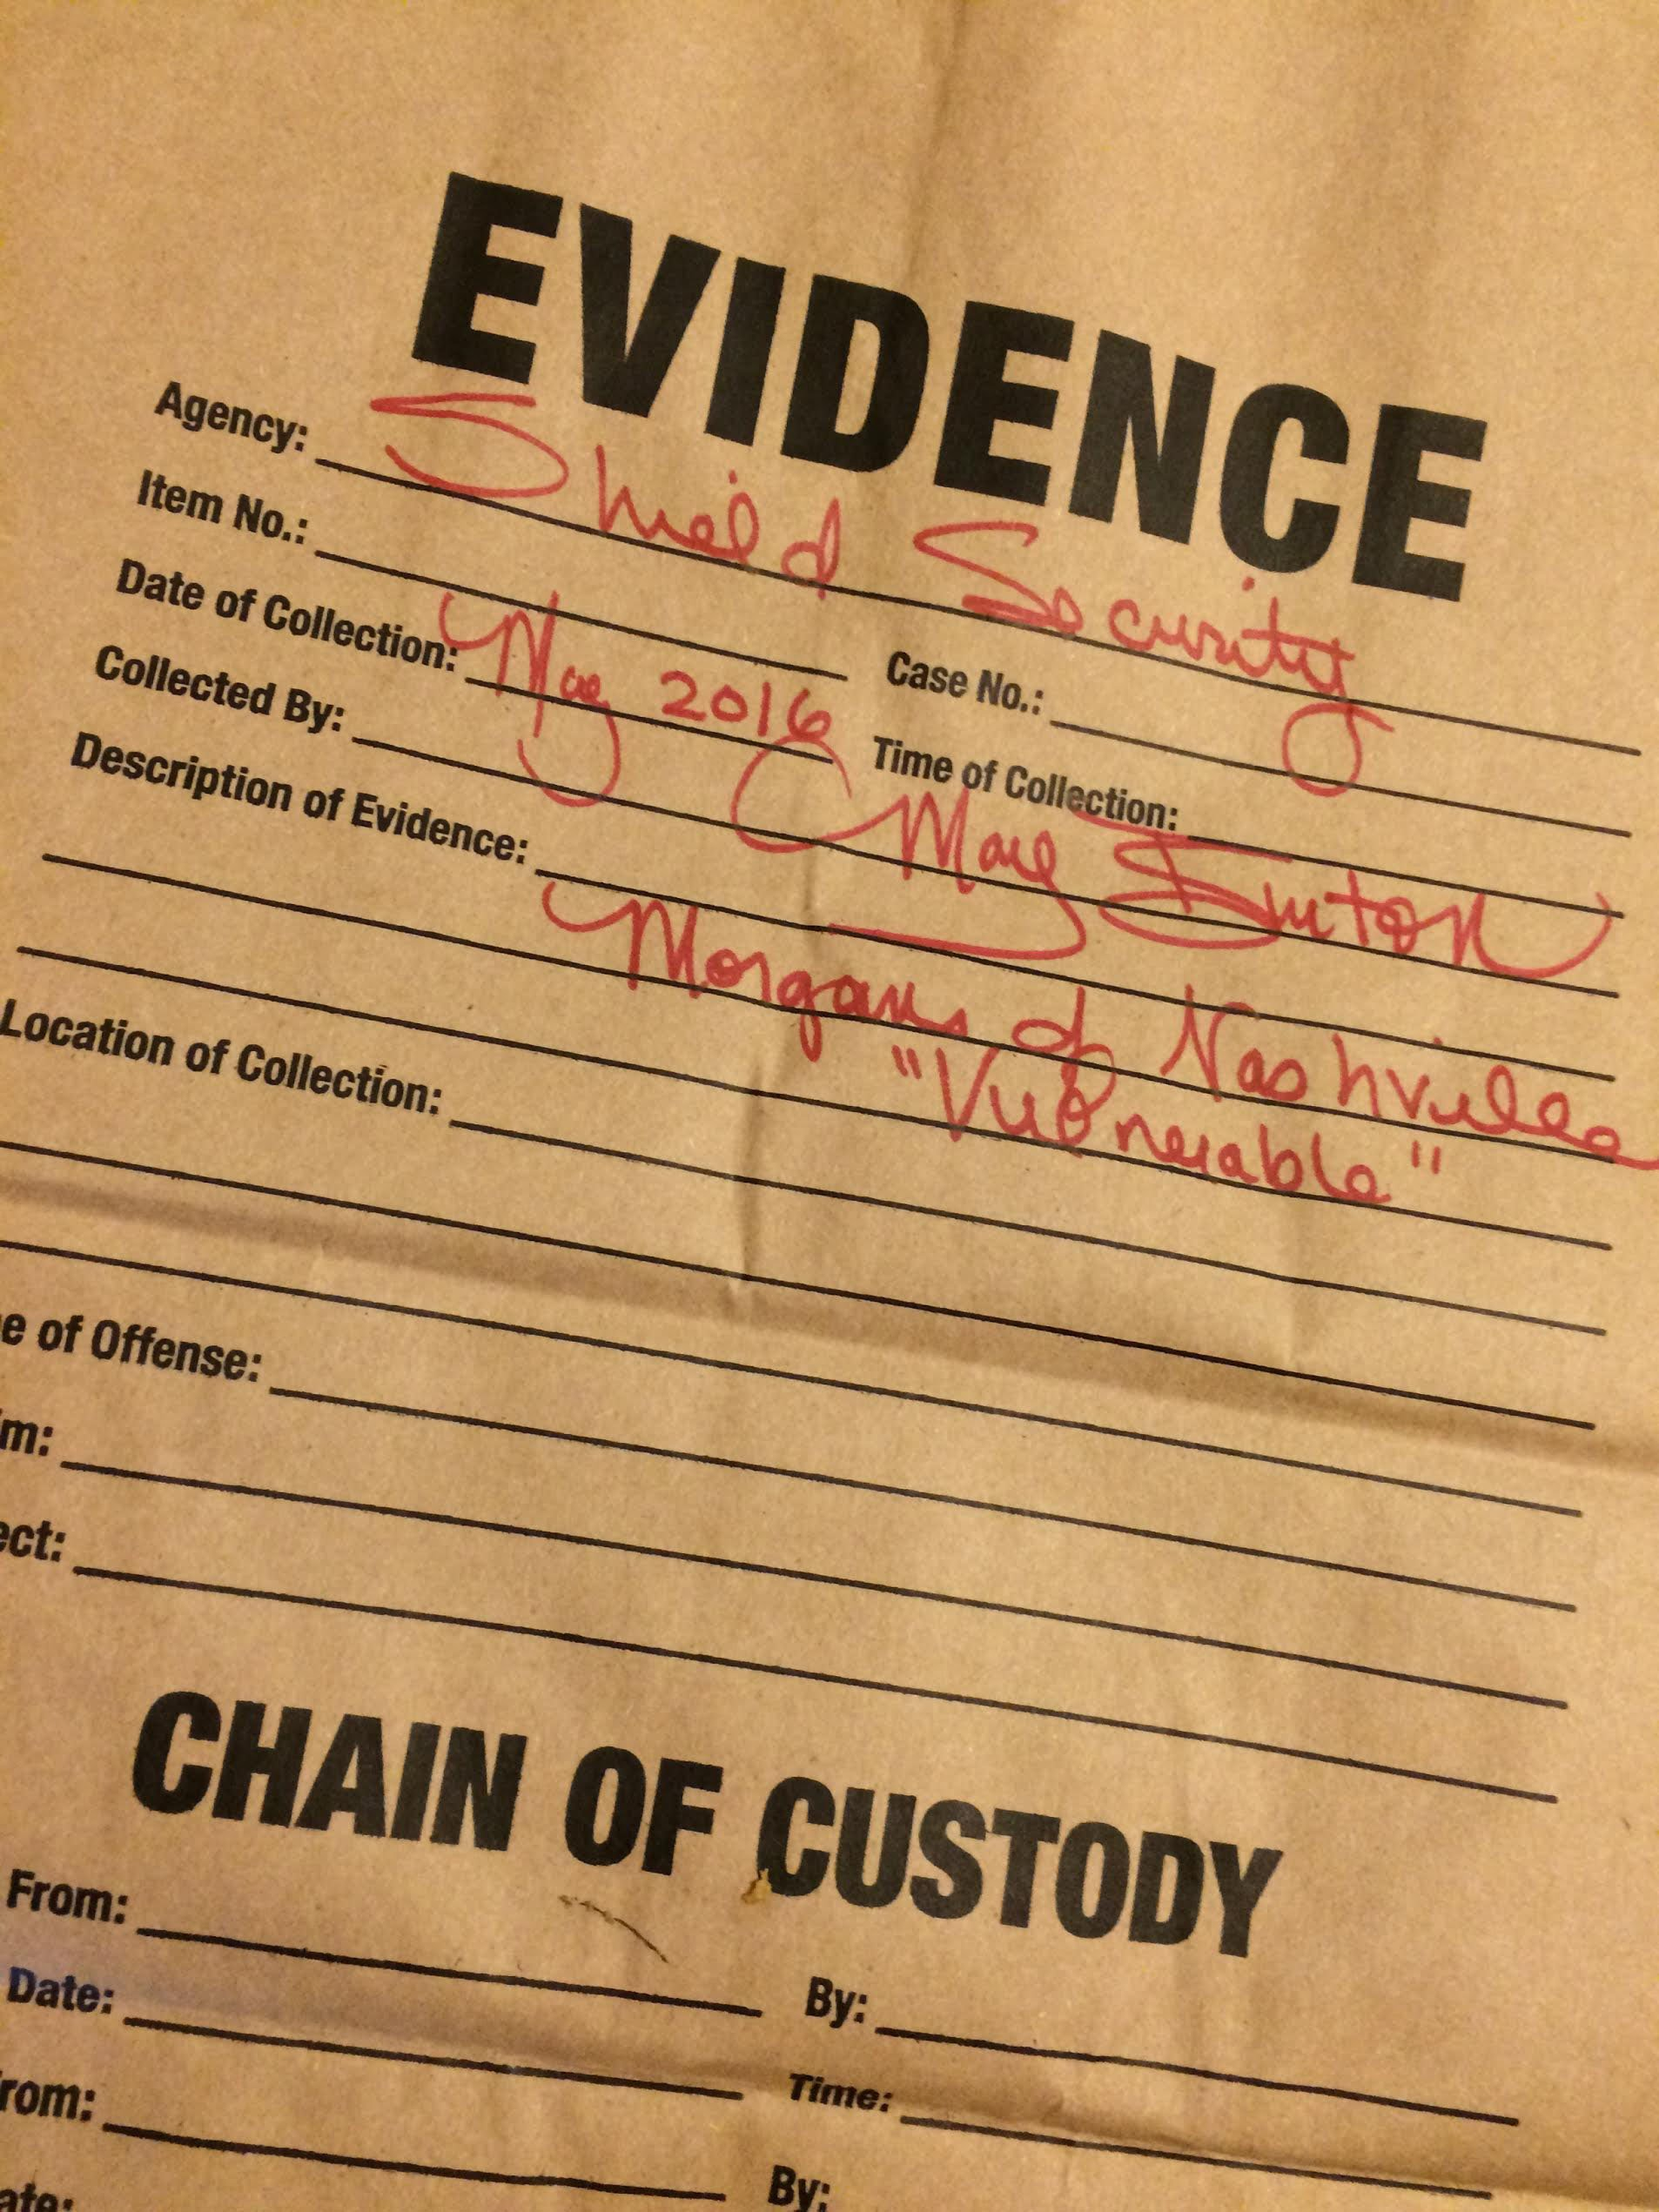 Picture of paper evidence collection bag